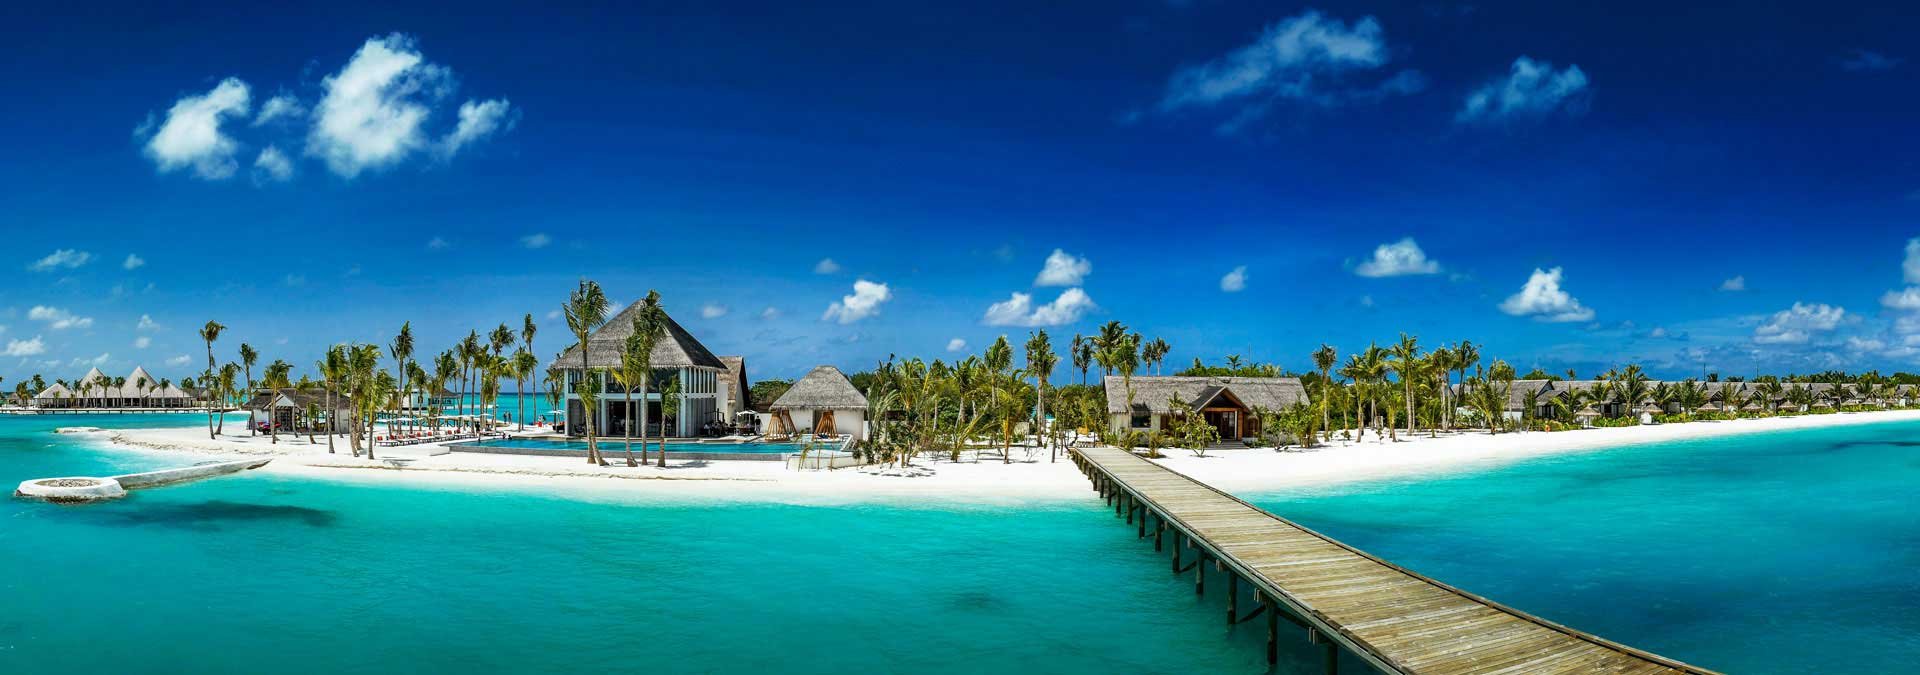 OZEN by Atmosphere at Maadhoo Island